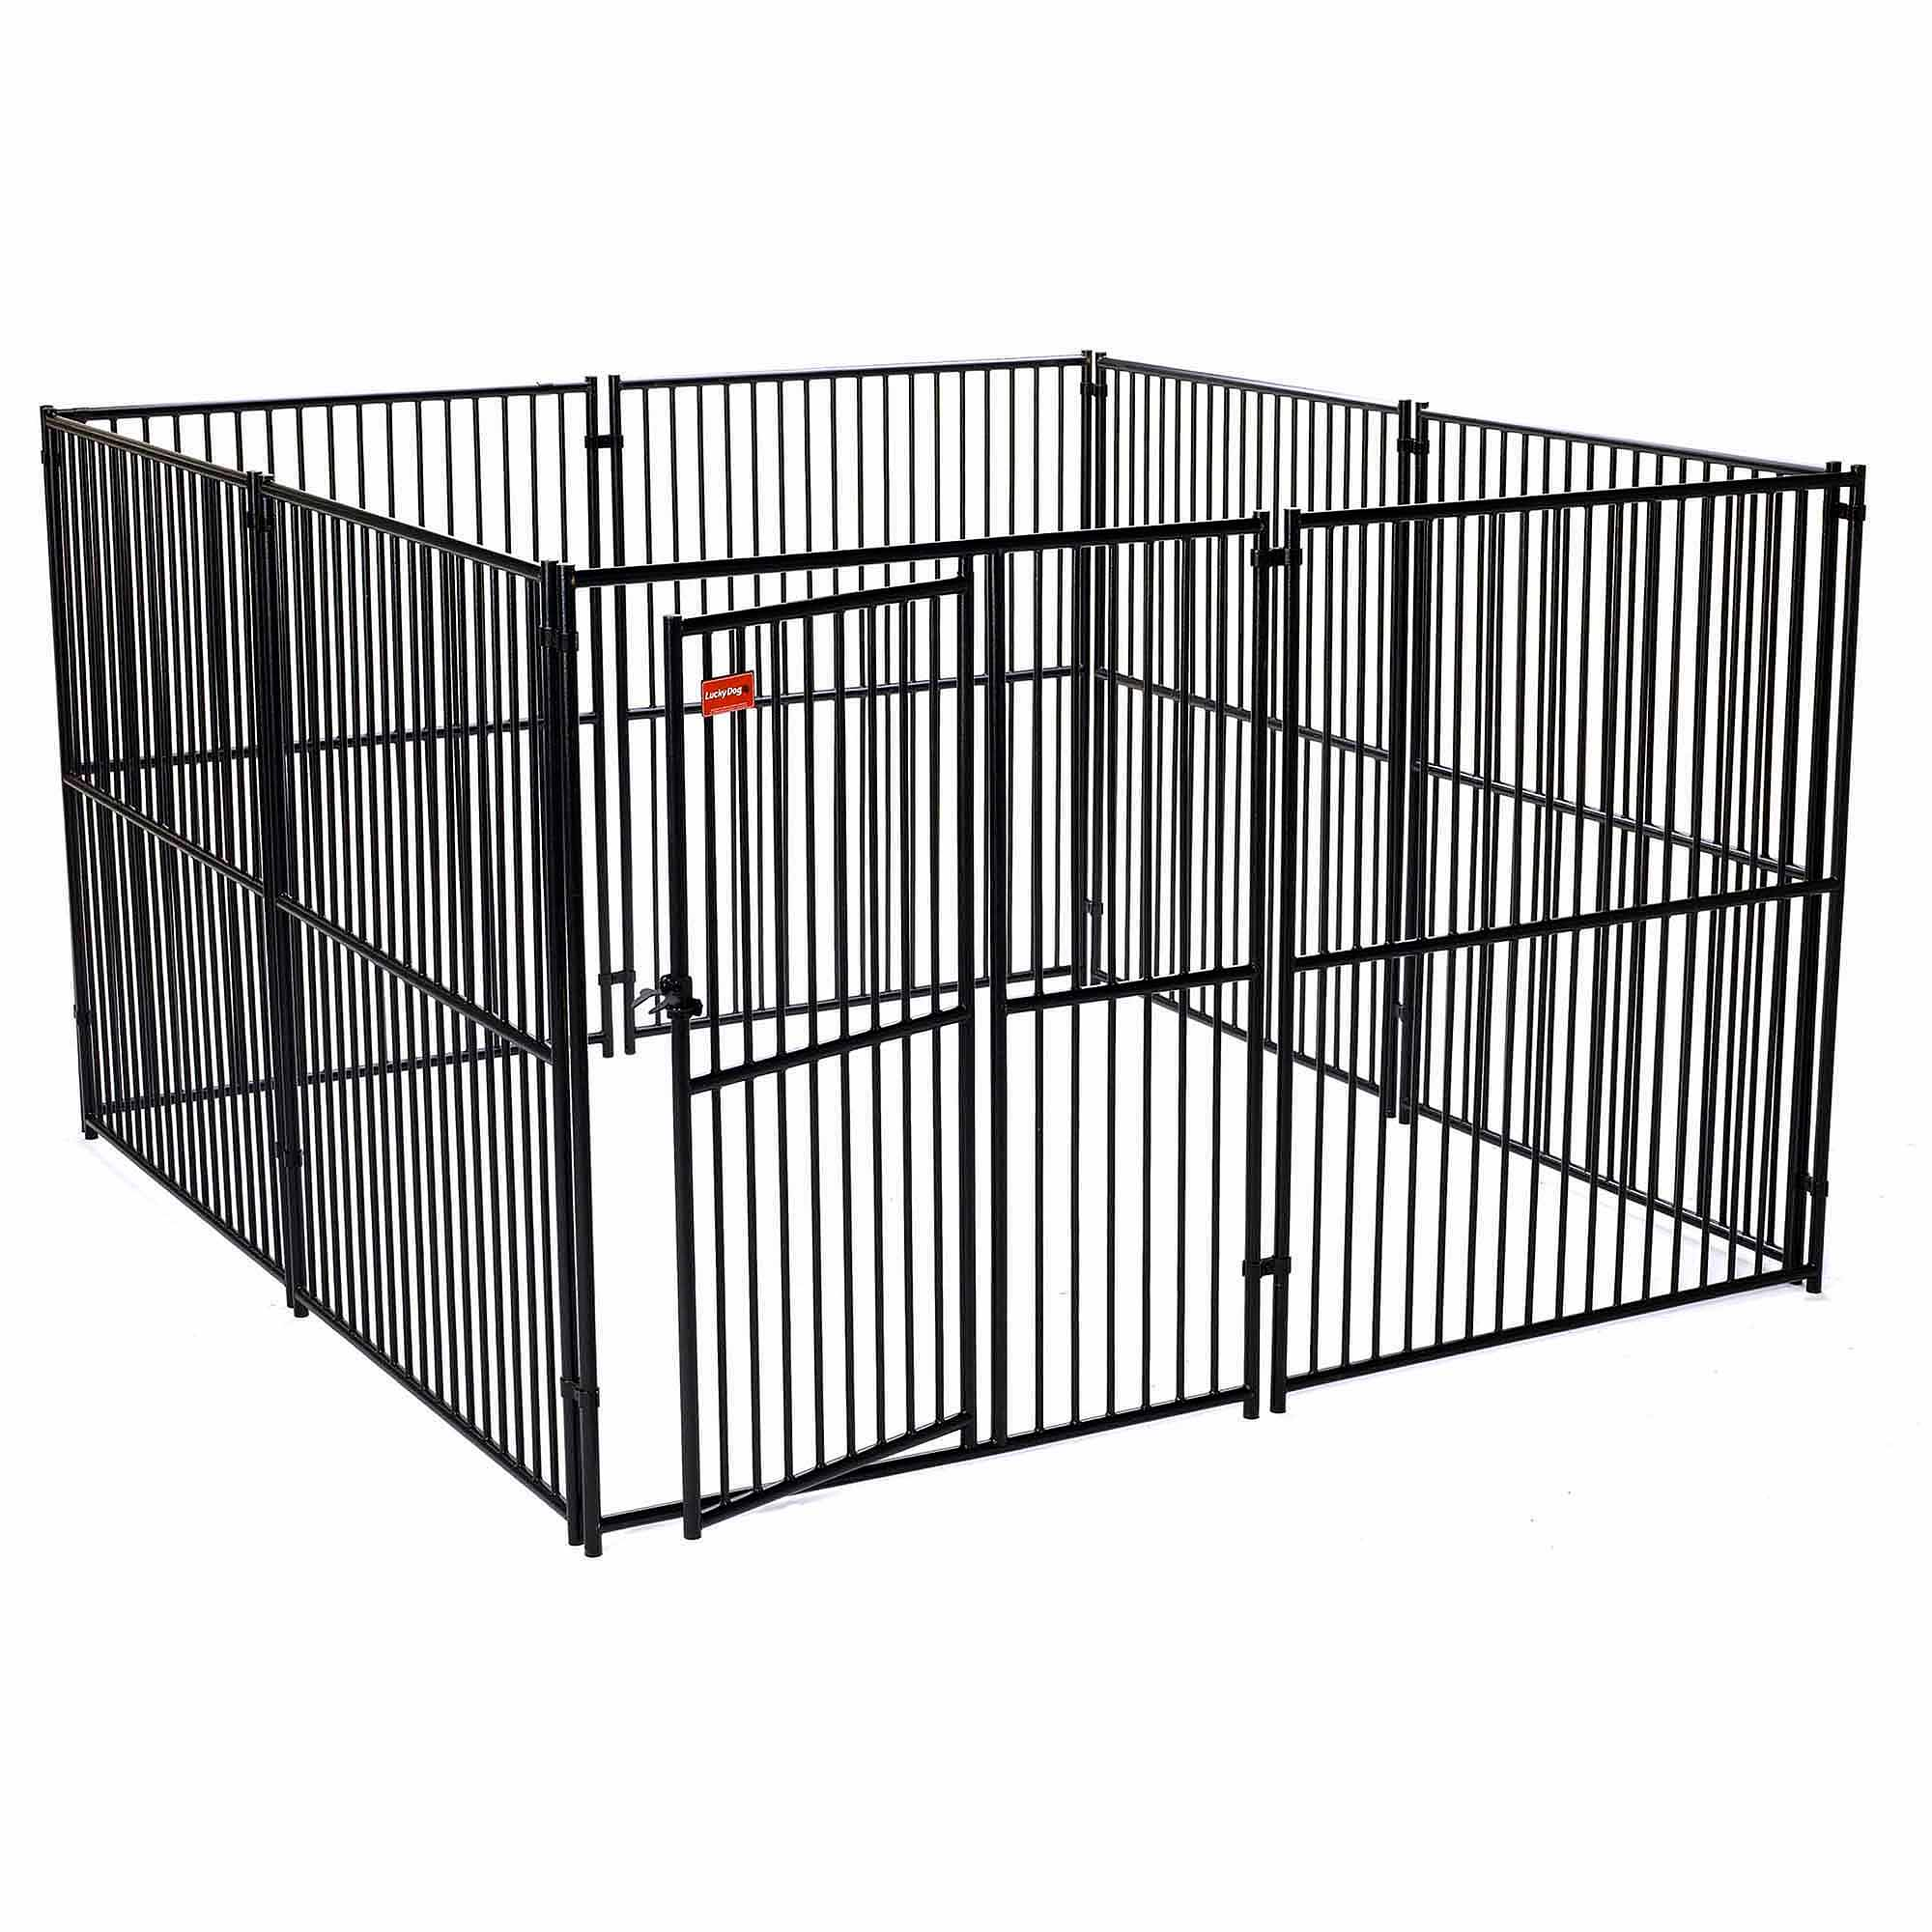 Lucky Dog European Style 10' x 10' Panel Kennel